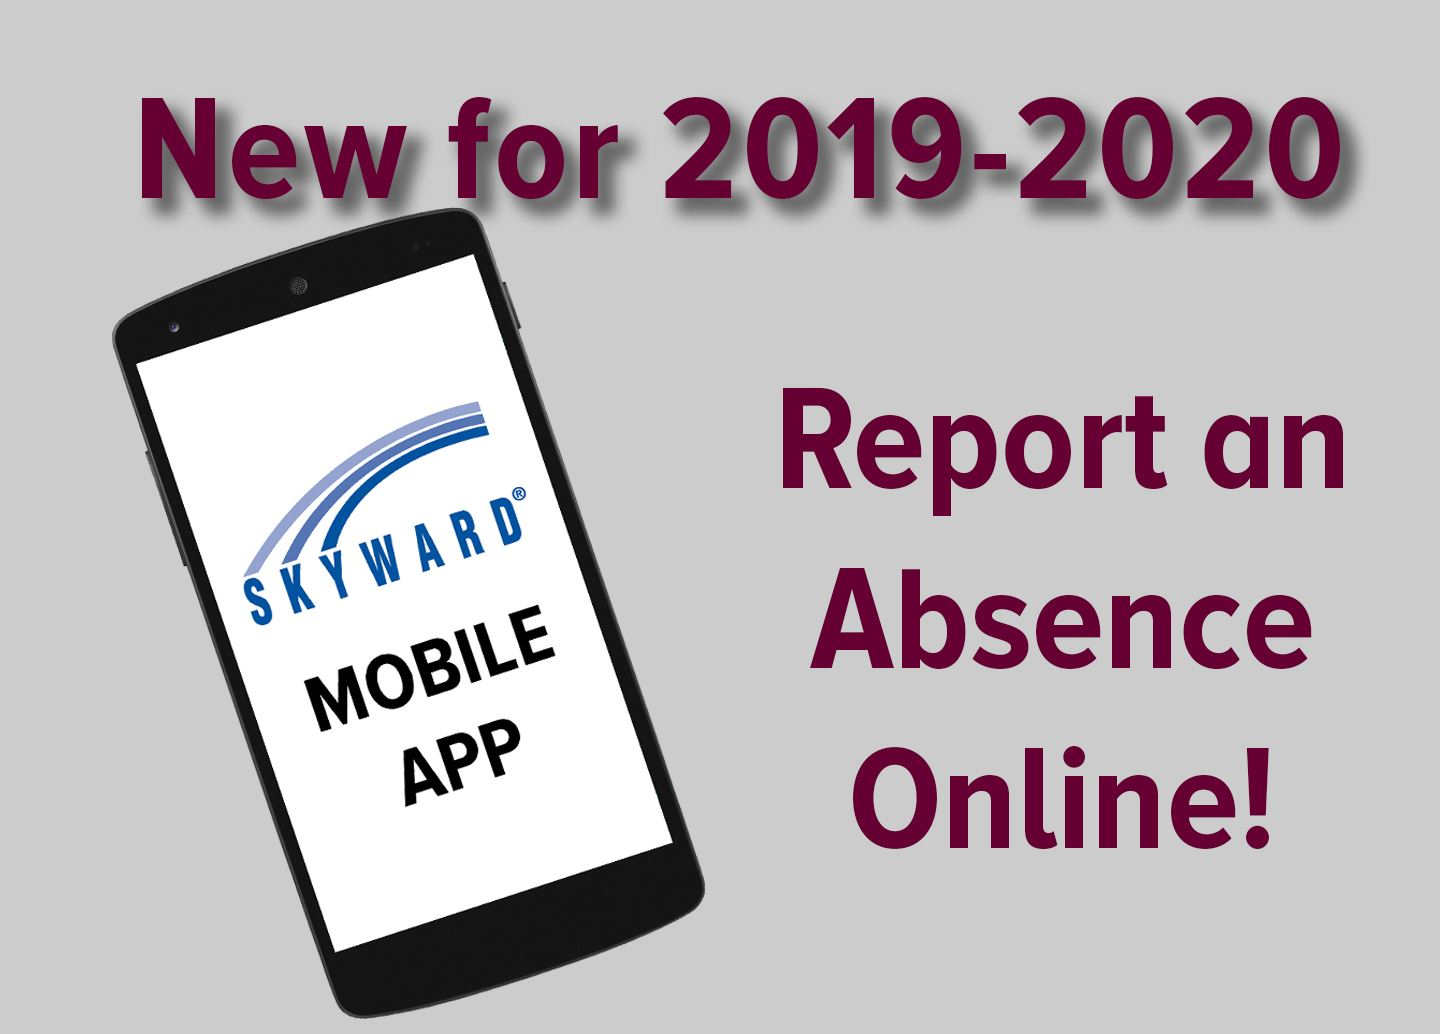 NEW FOR 2019-2020! Report an Absence Online!